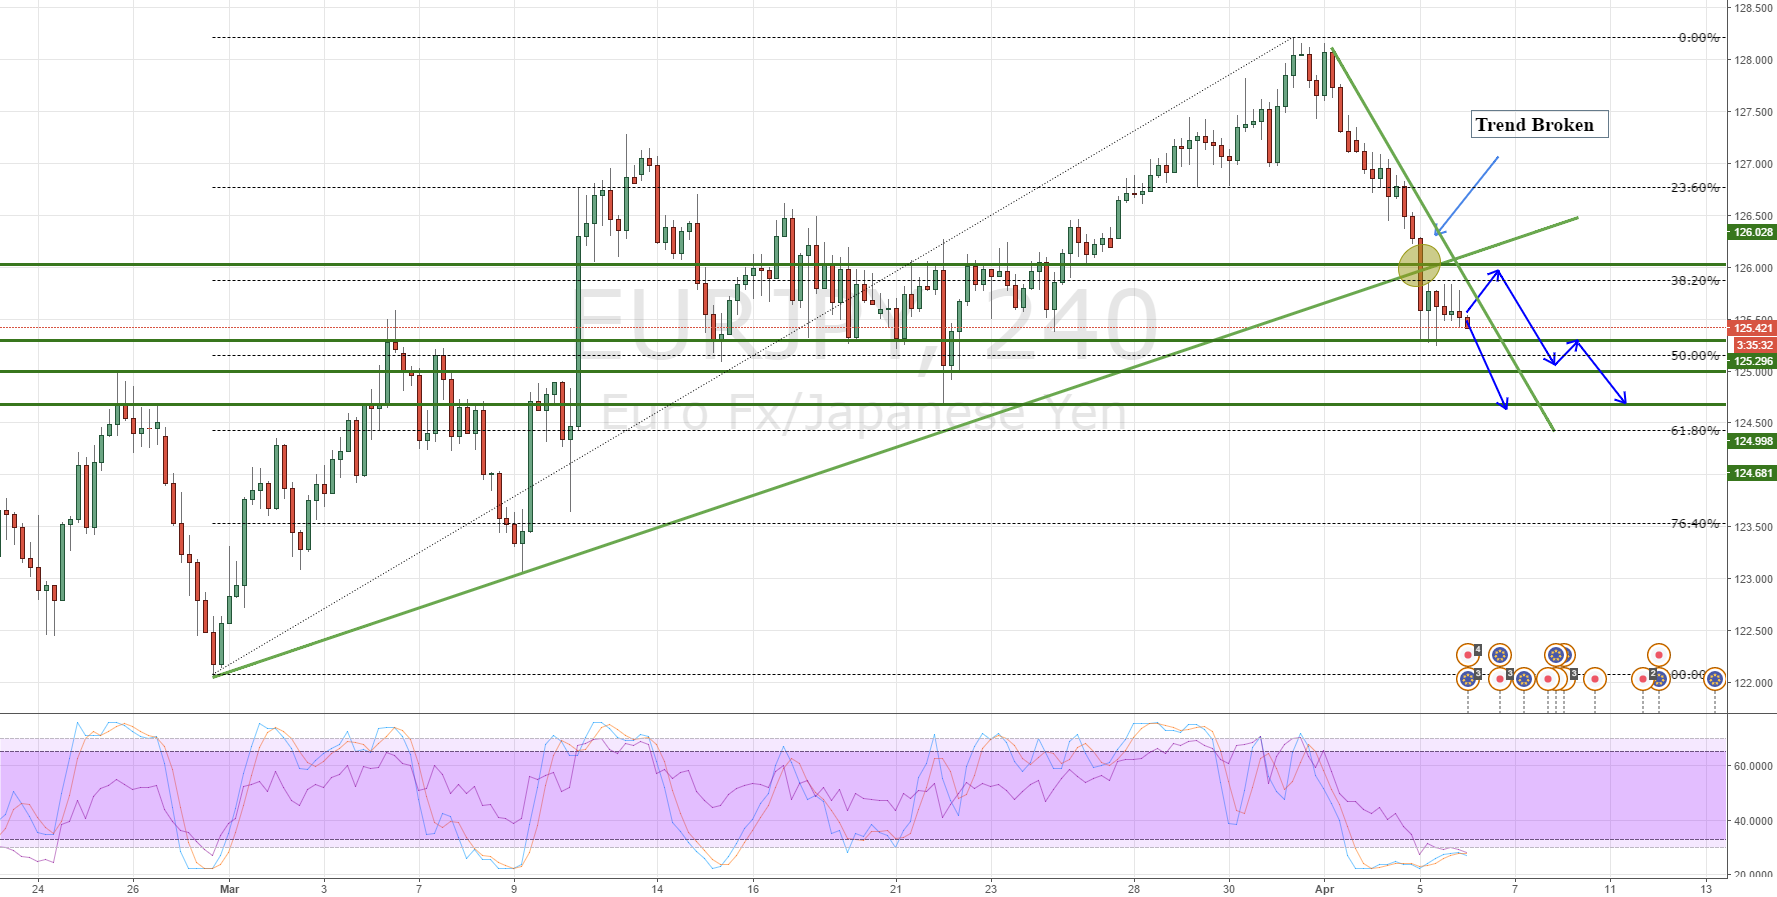 EURJPY, another breakout?